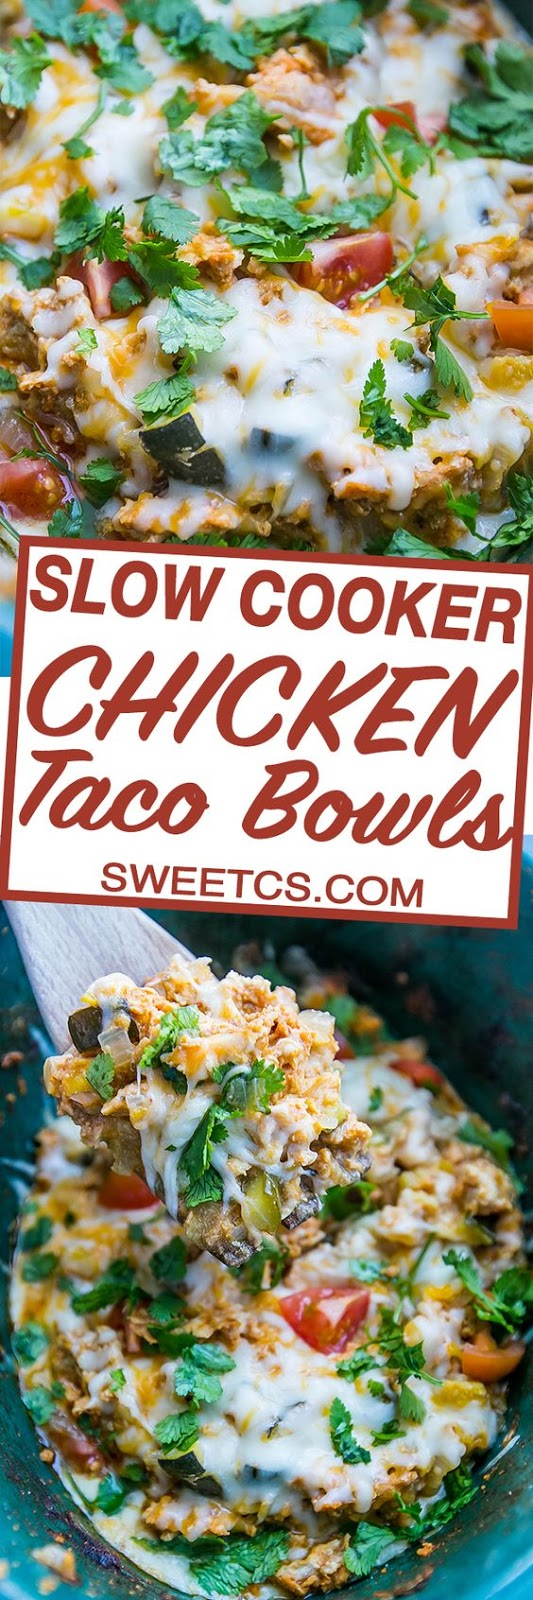 THE BEST SLOW COOKER CHICKEN TACO BOWLS RECIPE